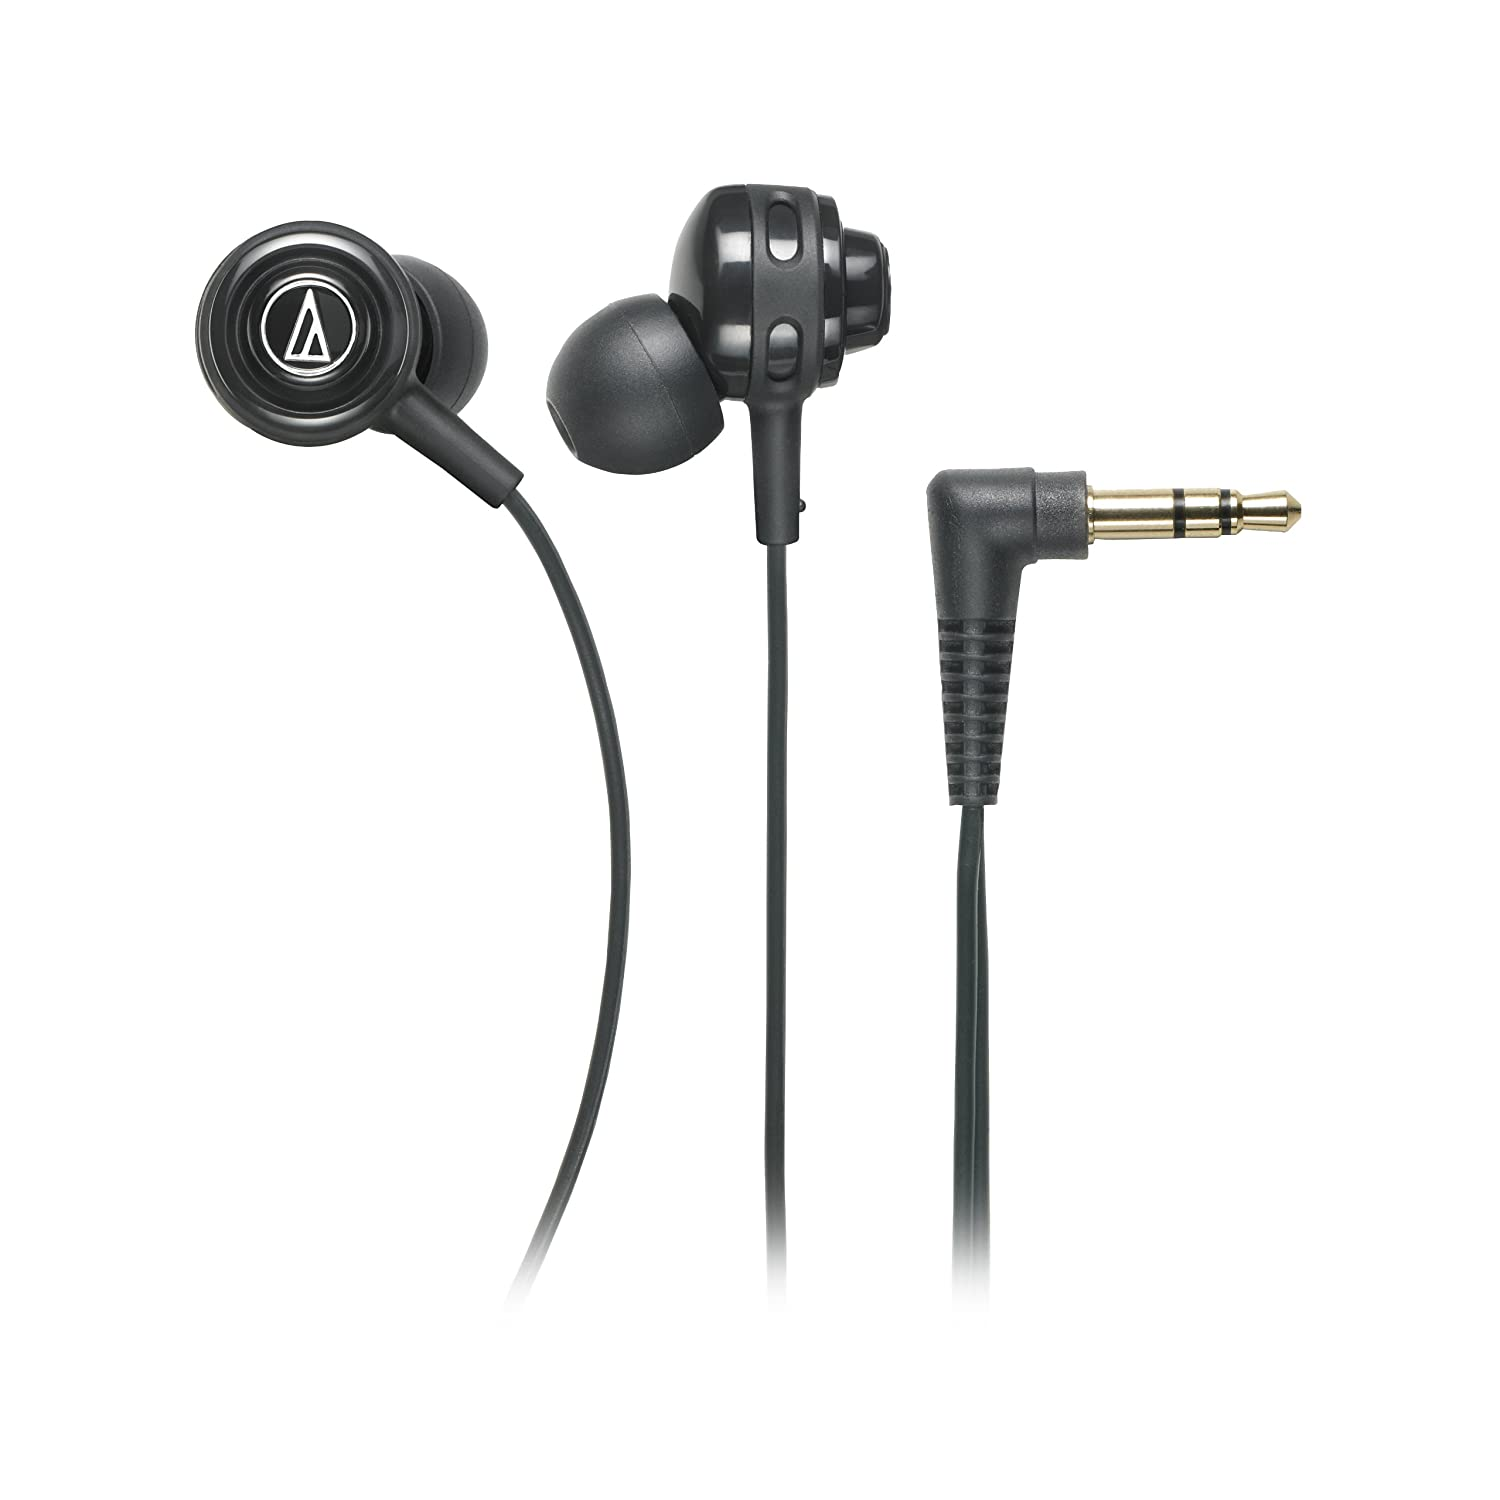 Best Earphones Under 1000 Rupees In India